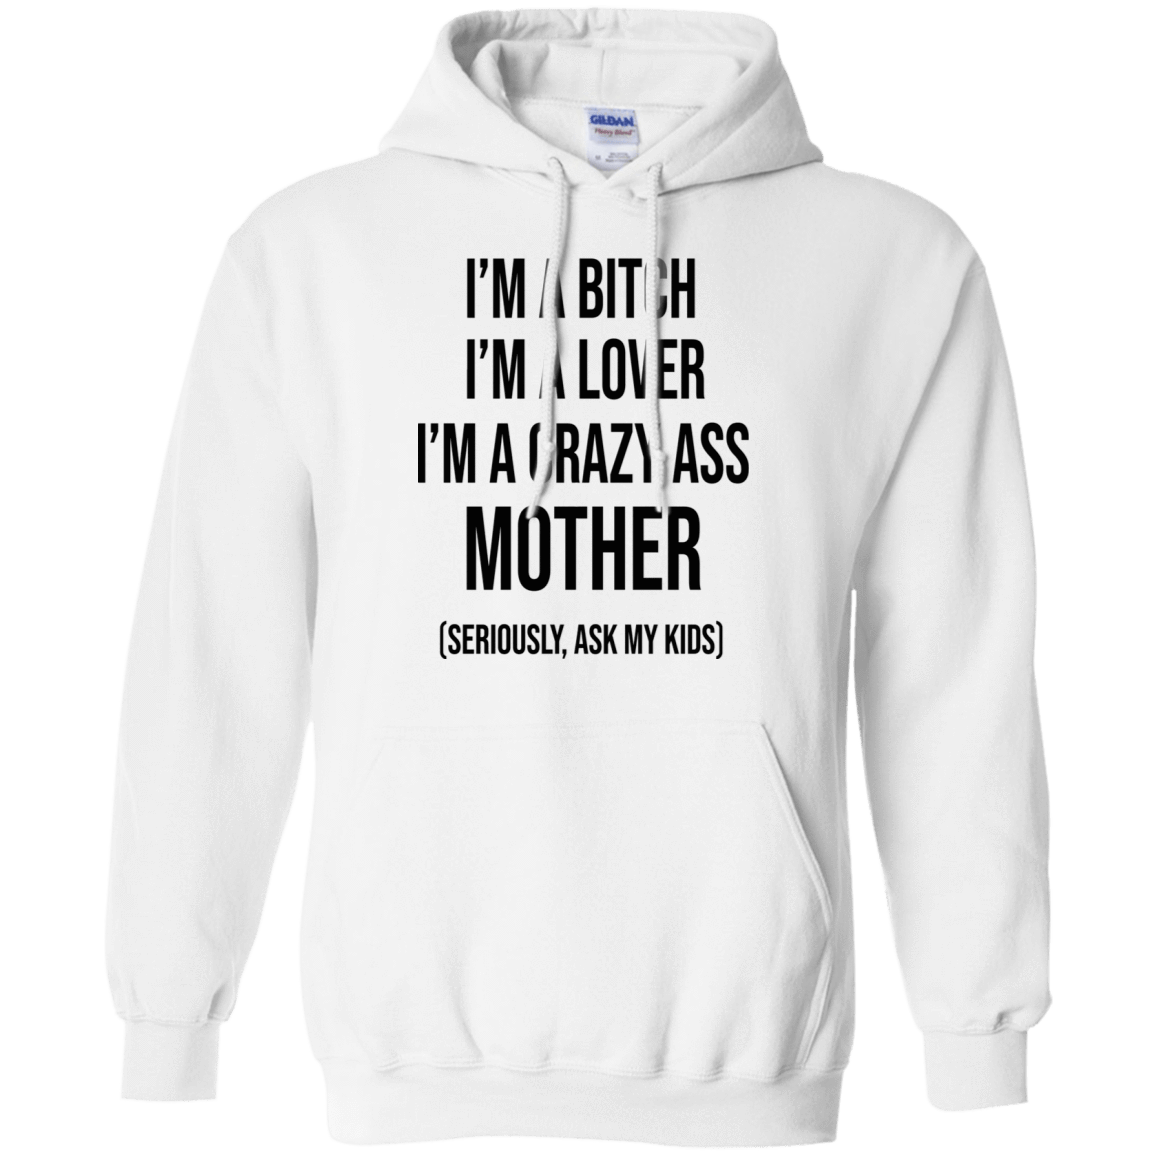 I'm A Bitch I'm A Lover I'm A Crazy Ass Mother Seriously Ask My Kids T-Shirts, Hoodie, Tank 541-4744-79030977-23183 - Tee Ript